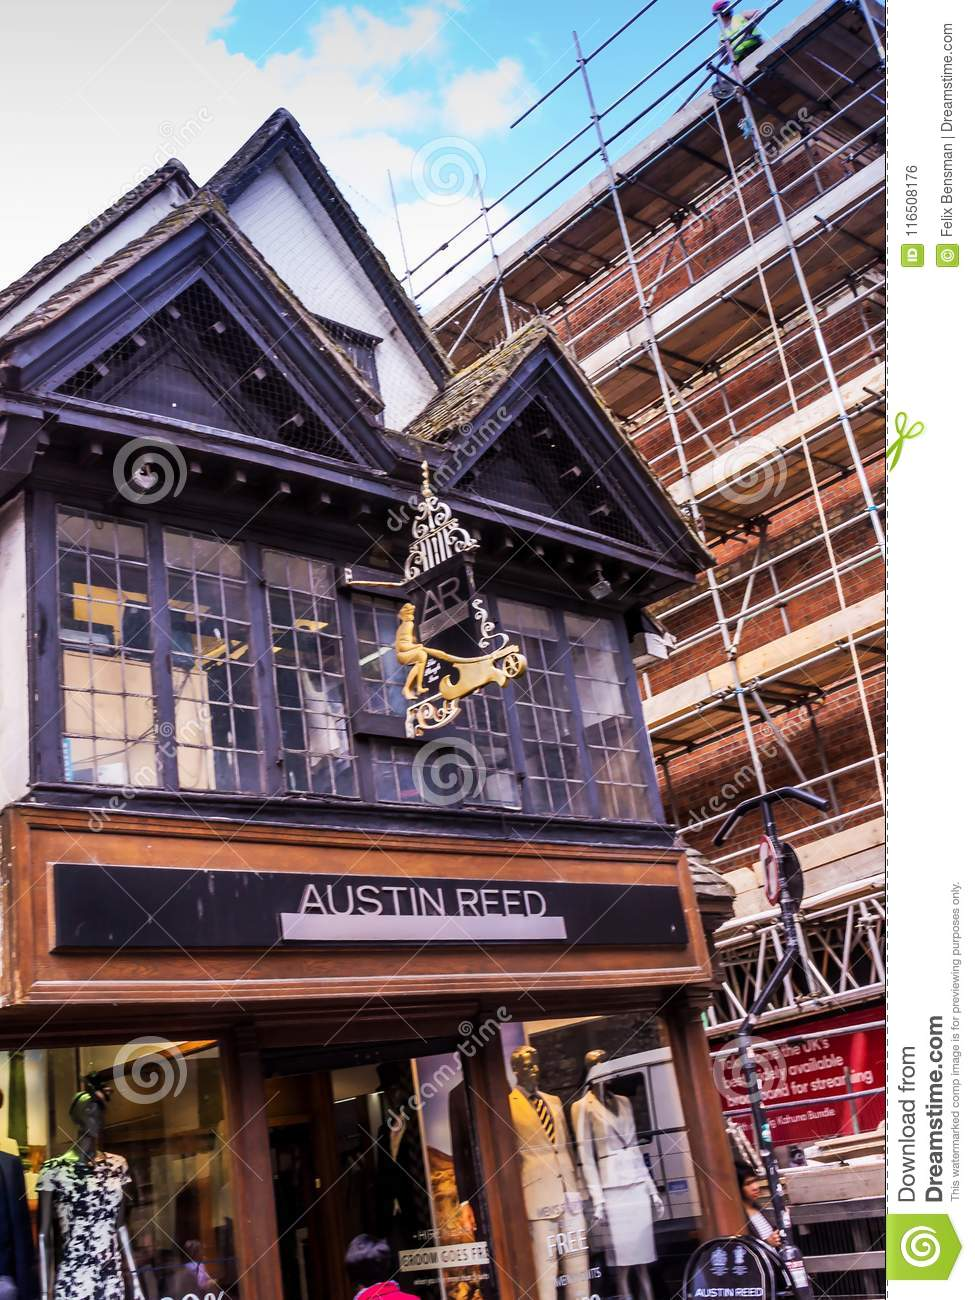 Austin Reed Photos Free Royalty Free Stock Photos From Dreamstime